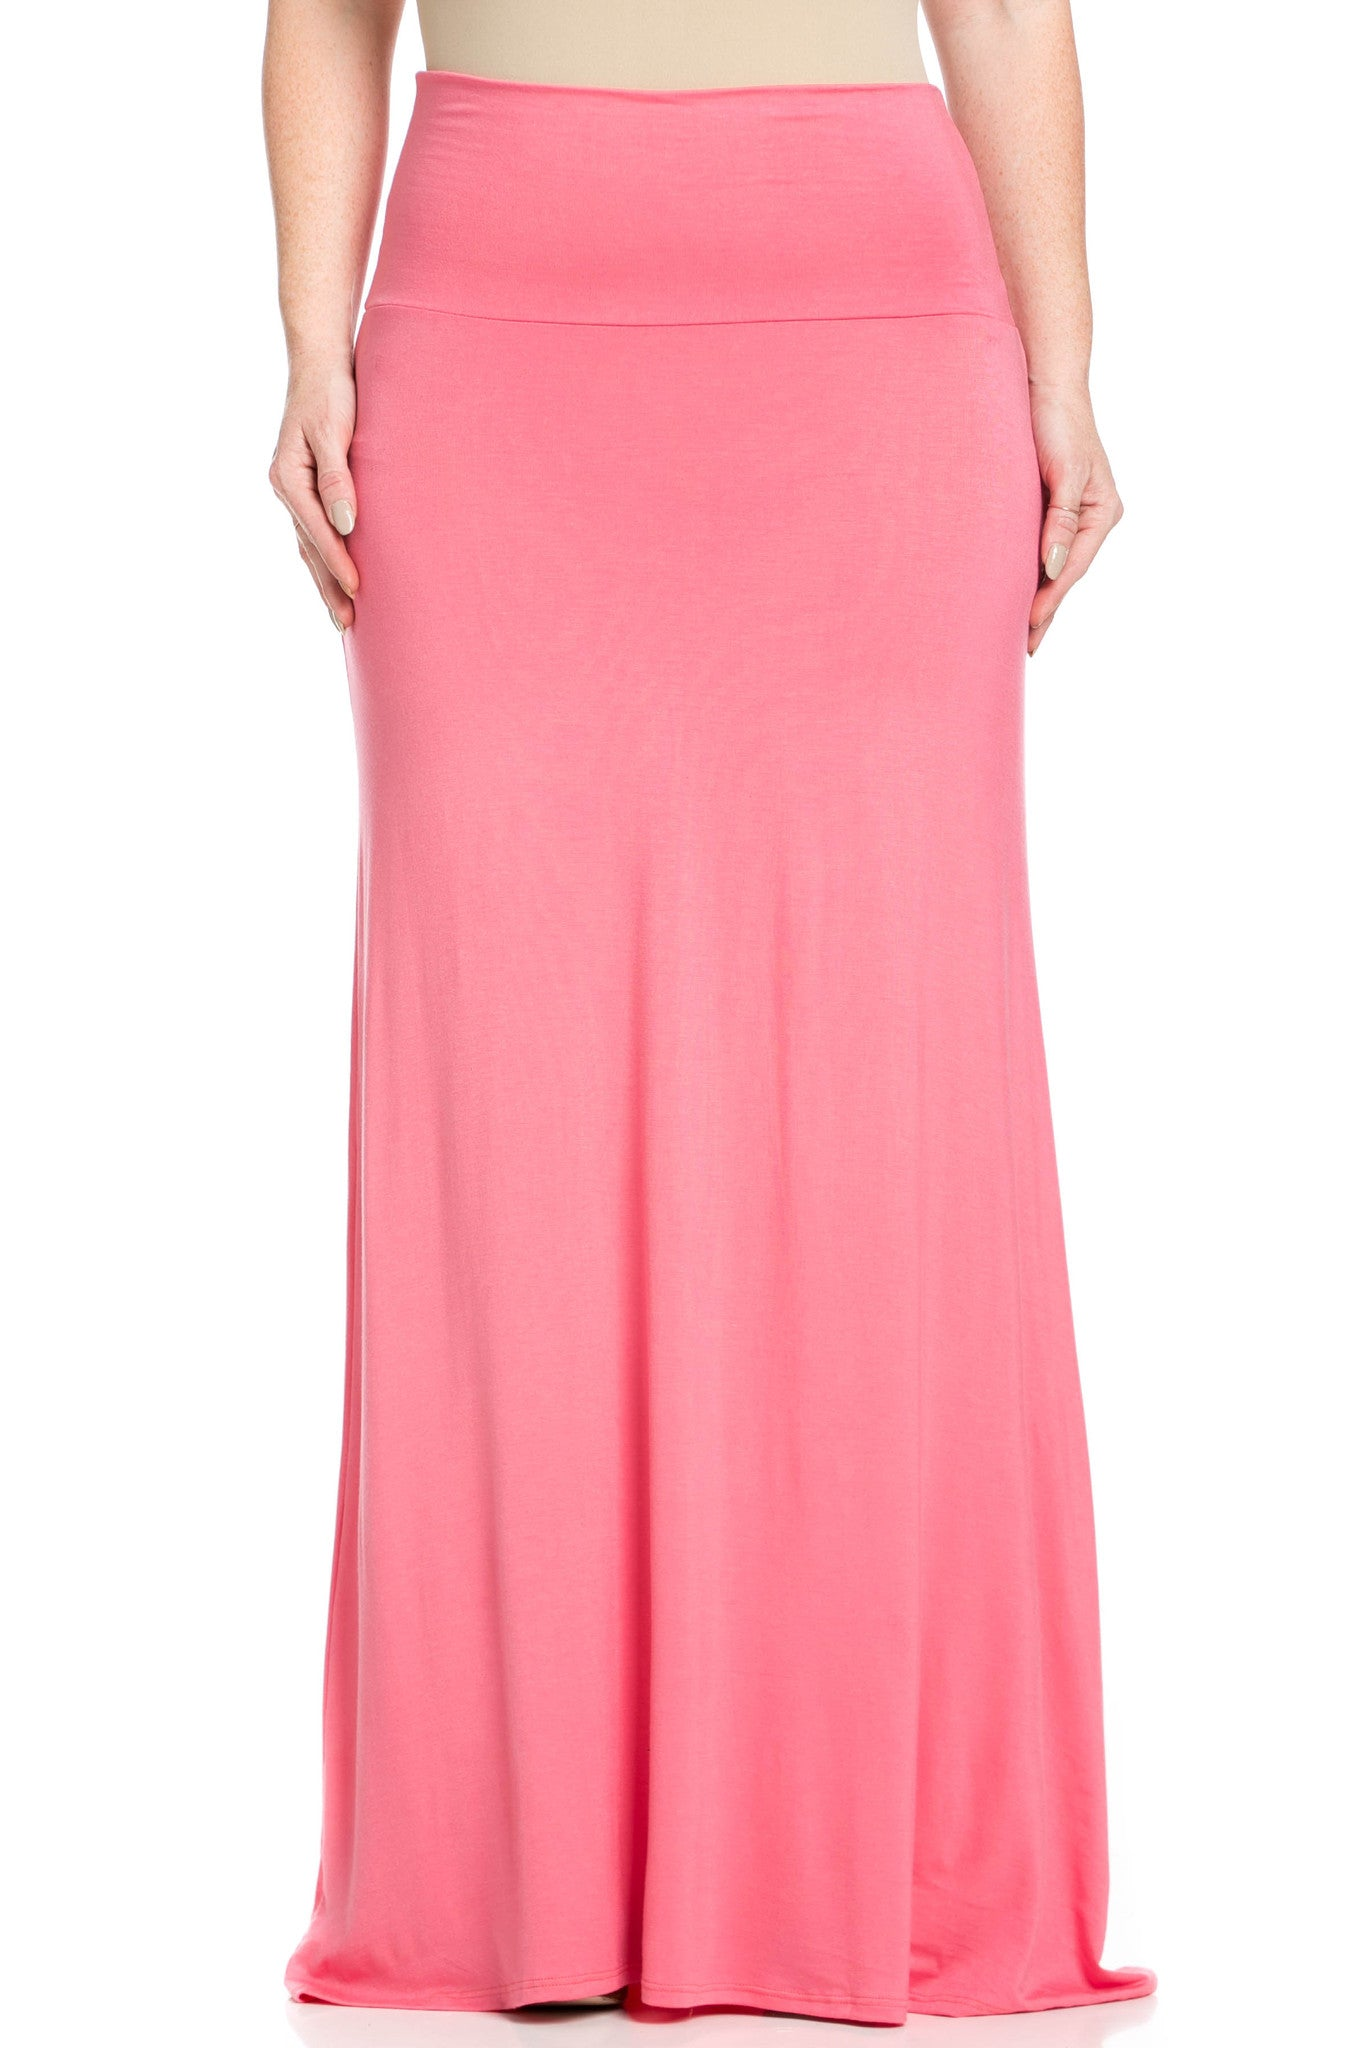 Fold Over Two-Way Maxi Skirt Coral - Skirts - My Yuccie - 12